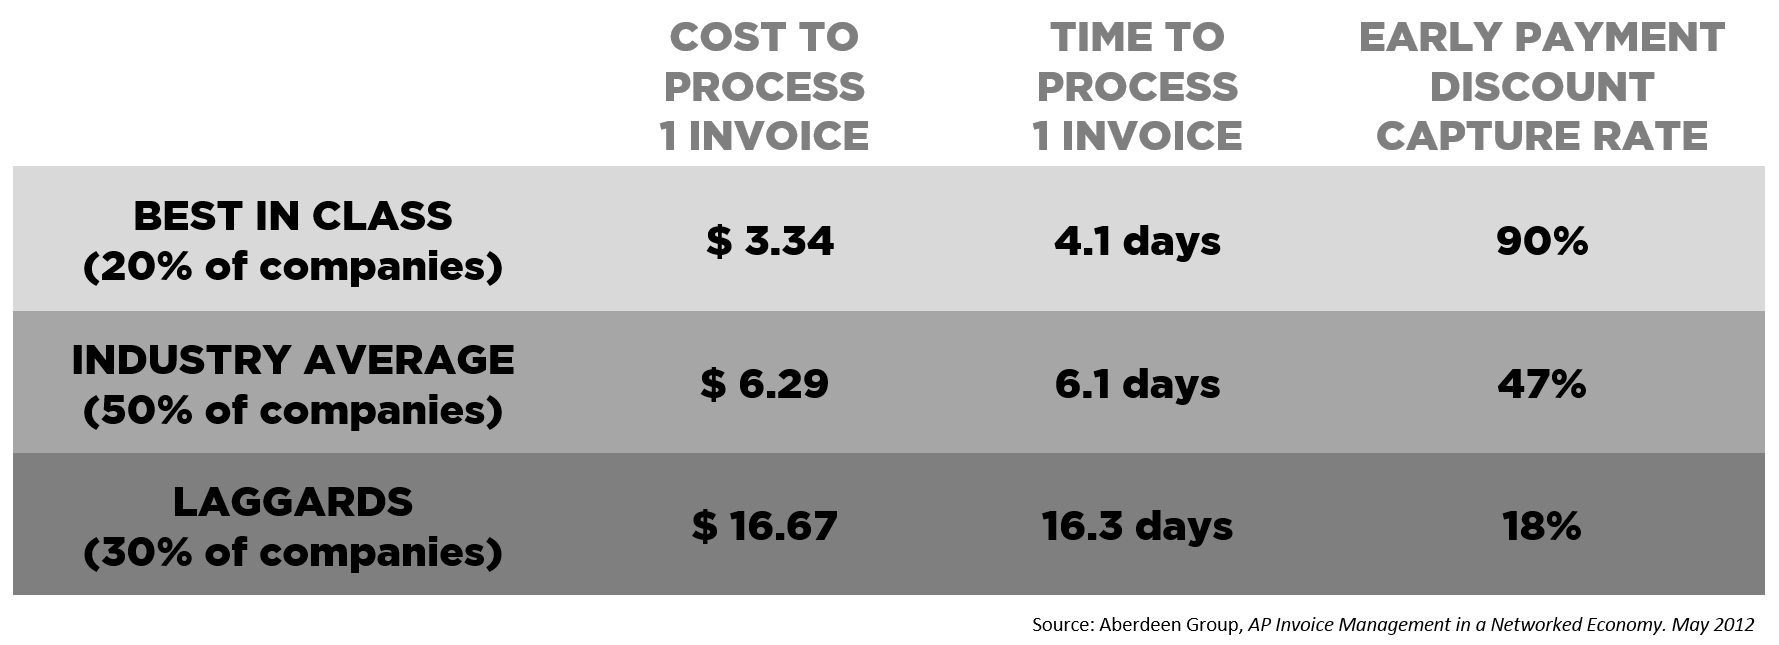 Cost of Processing Invoice - Research by Aberdeen Group